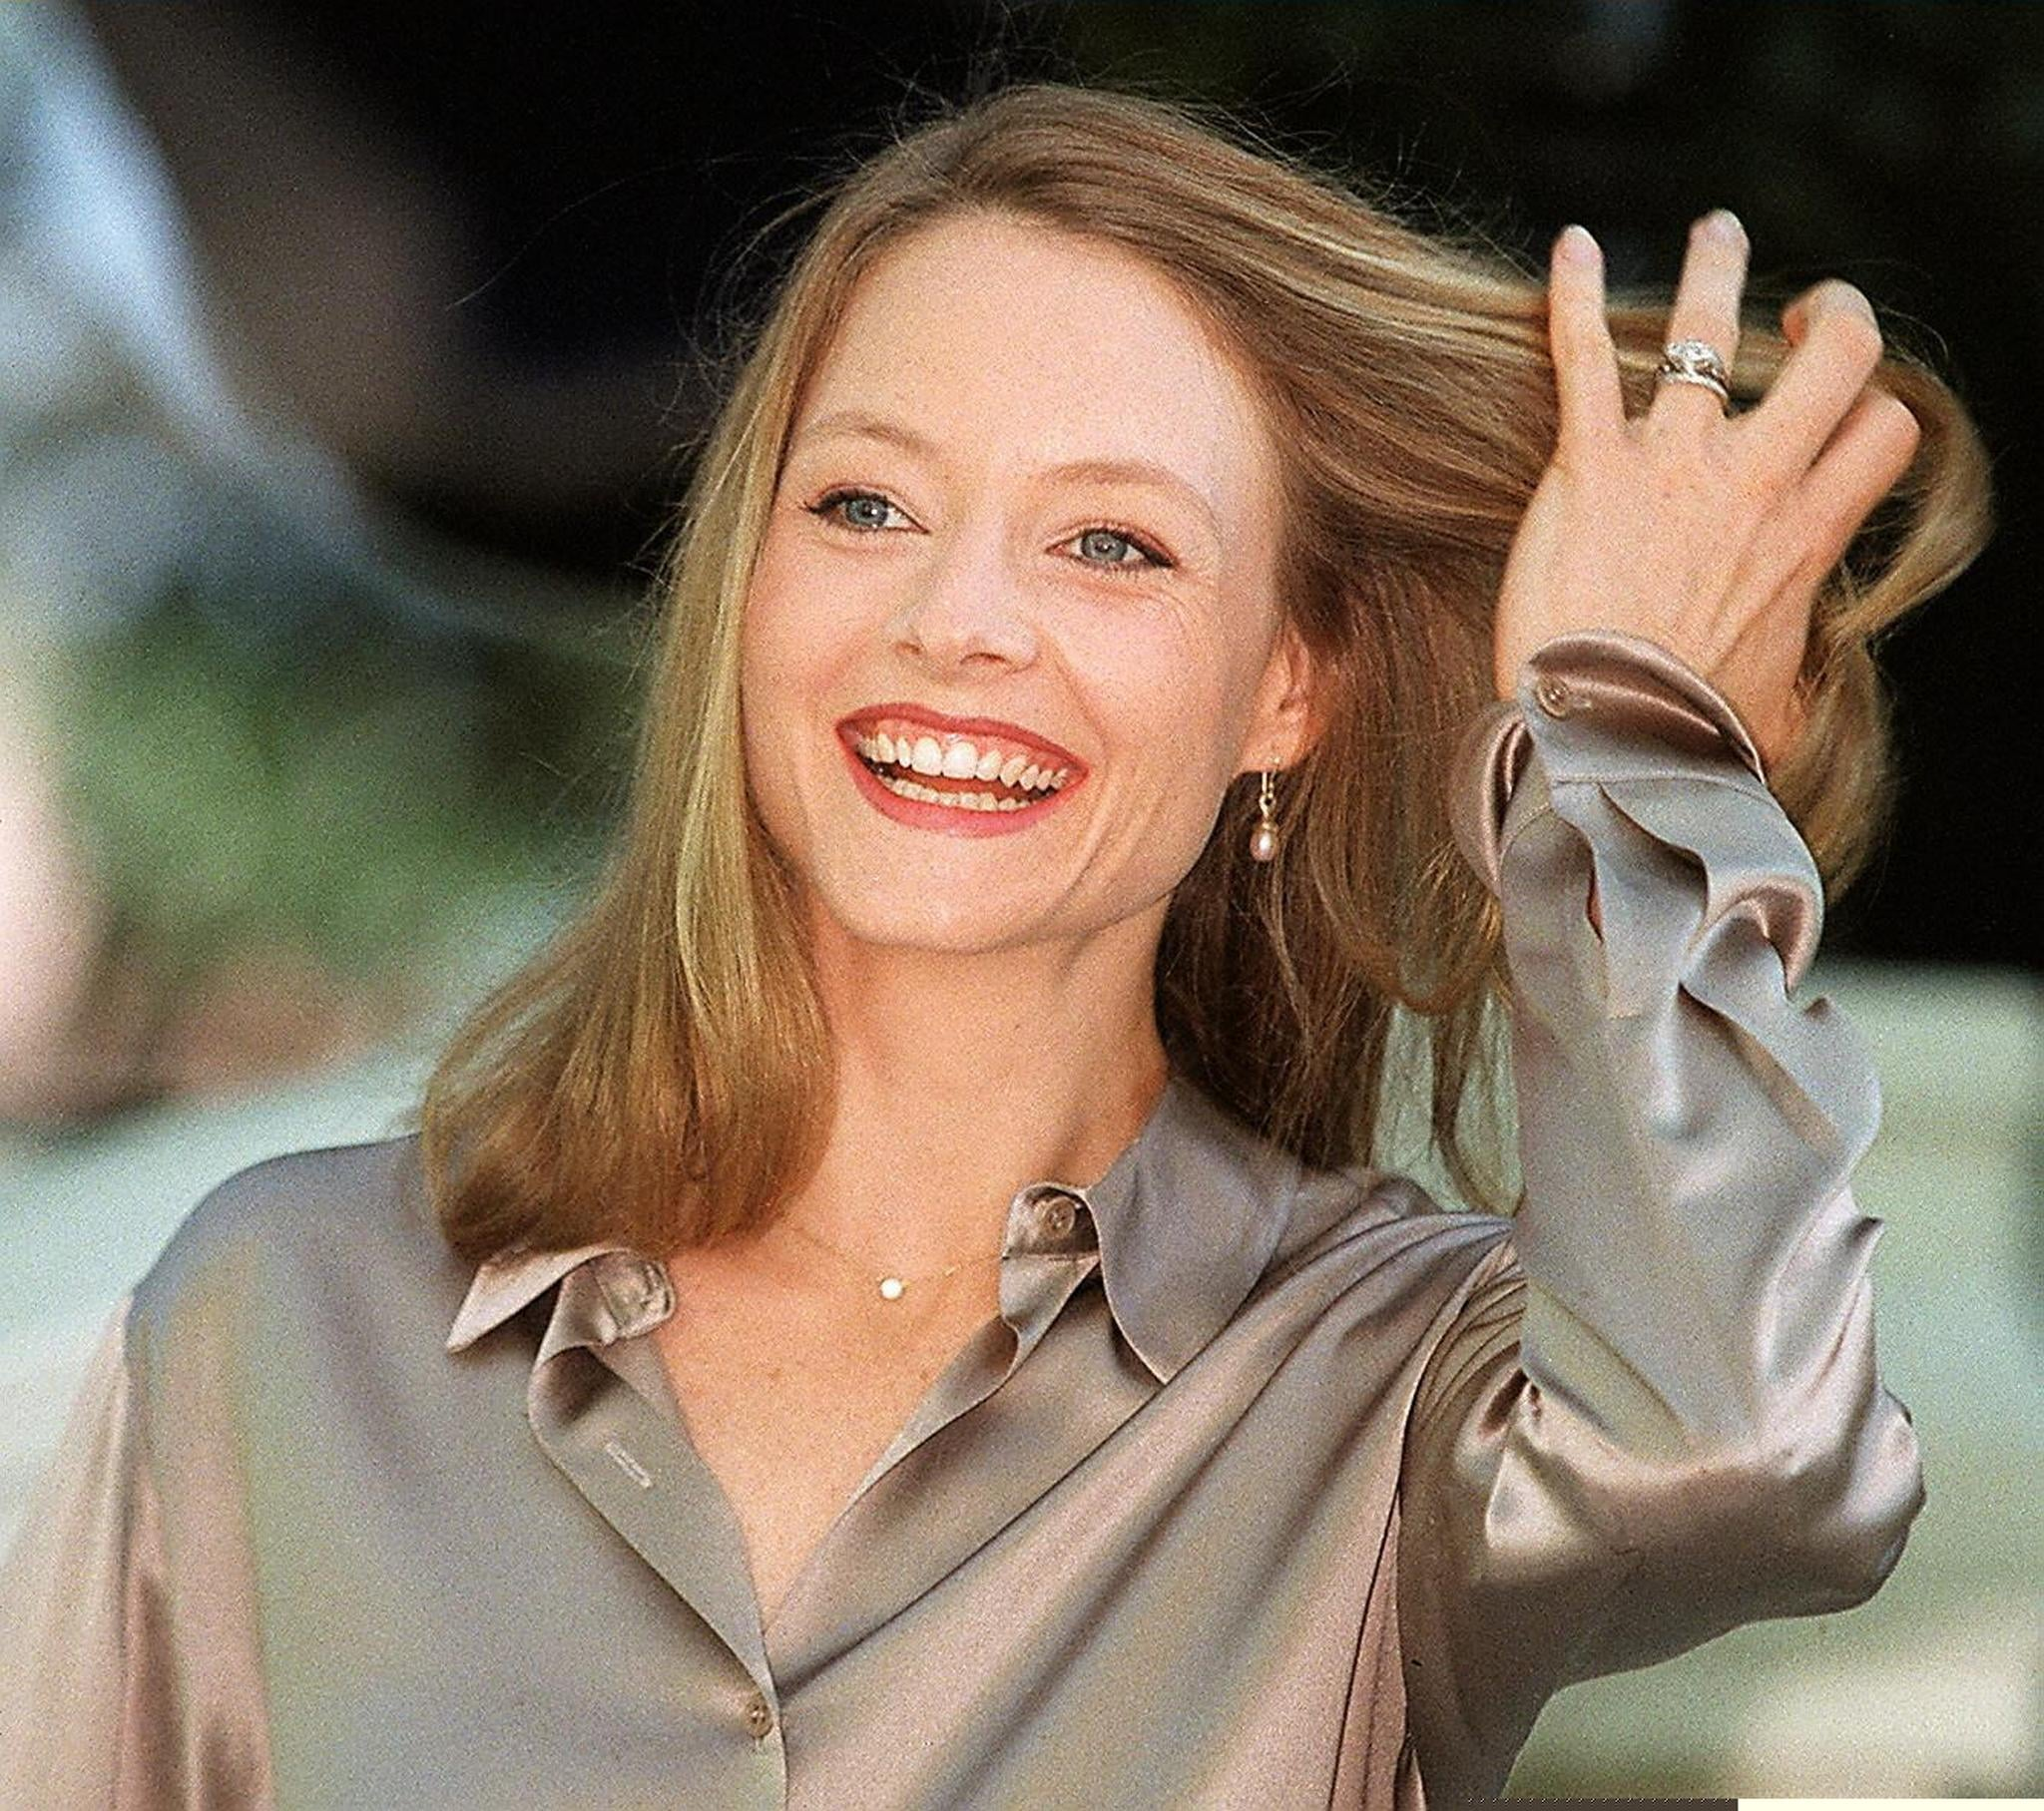 jodie foster 50 years of cannes red carpet beauty popsugar beauty. Black Bedroom Furniture Sets. Home Design Ideas